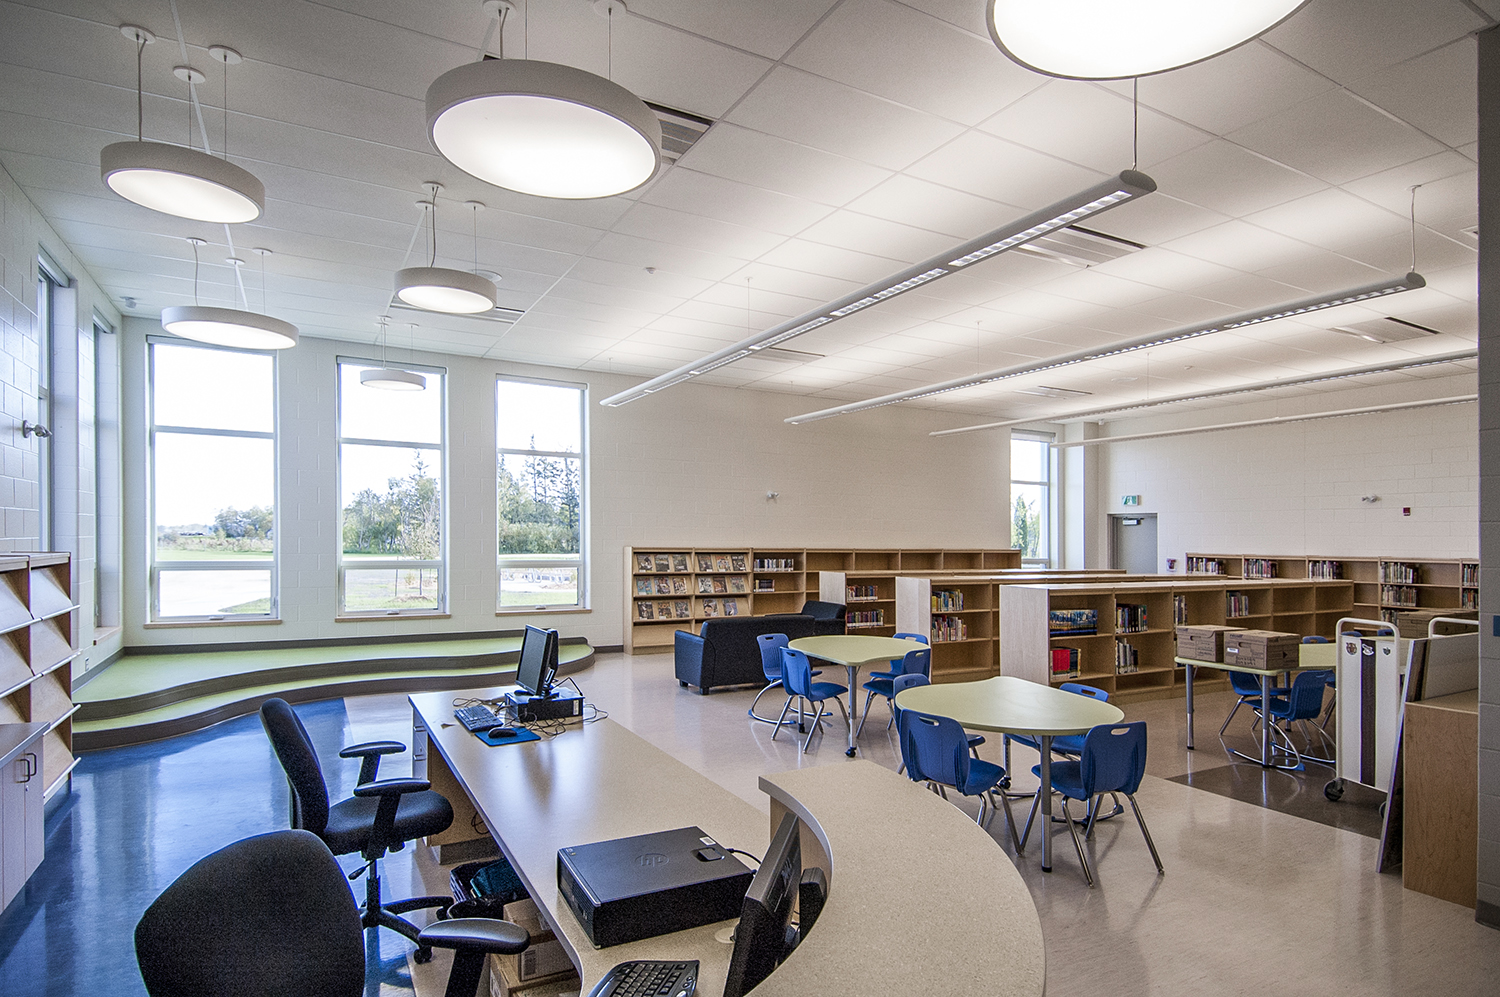 Woodlands K-8 School, interior photo of library / Photo: Derrick Finch